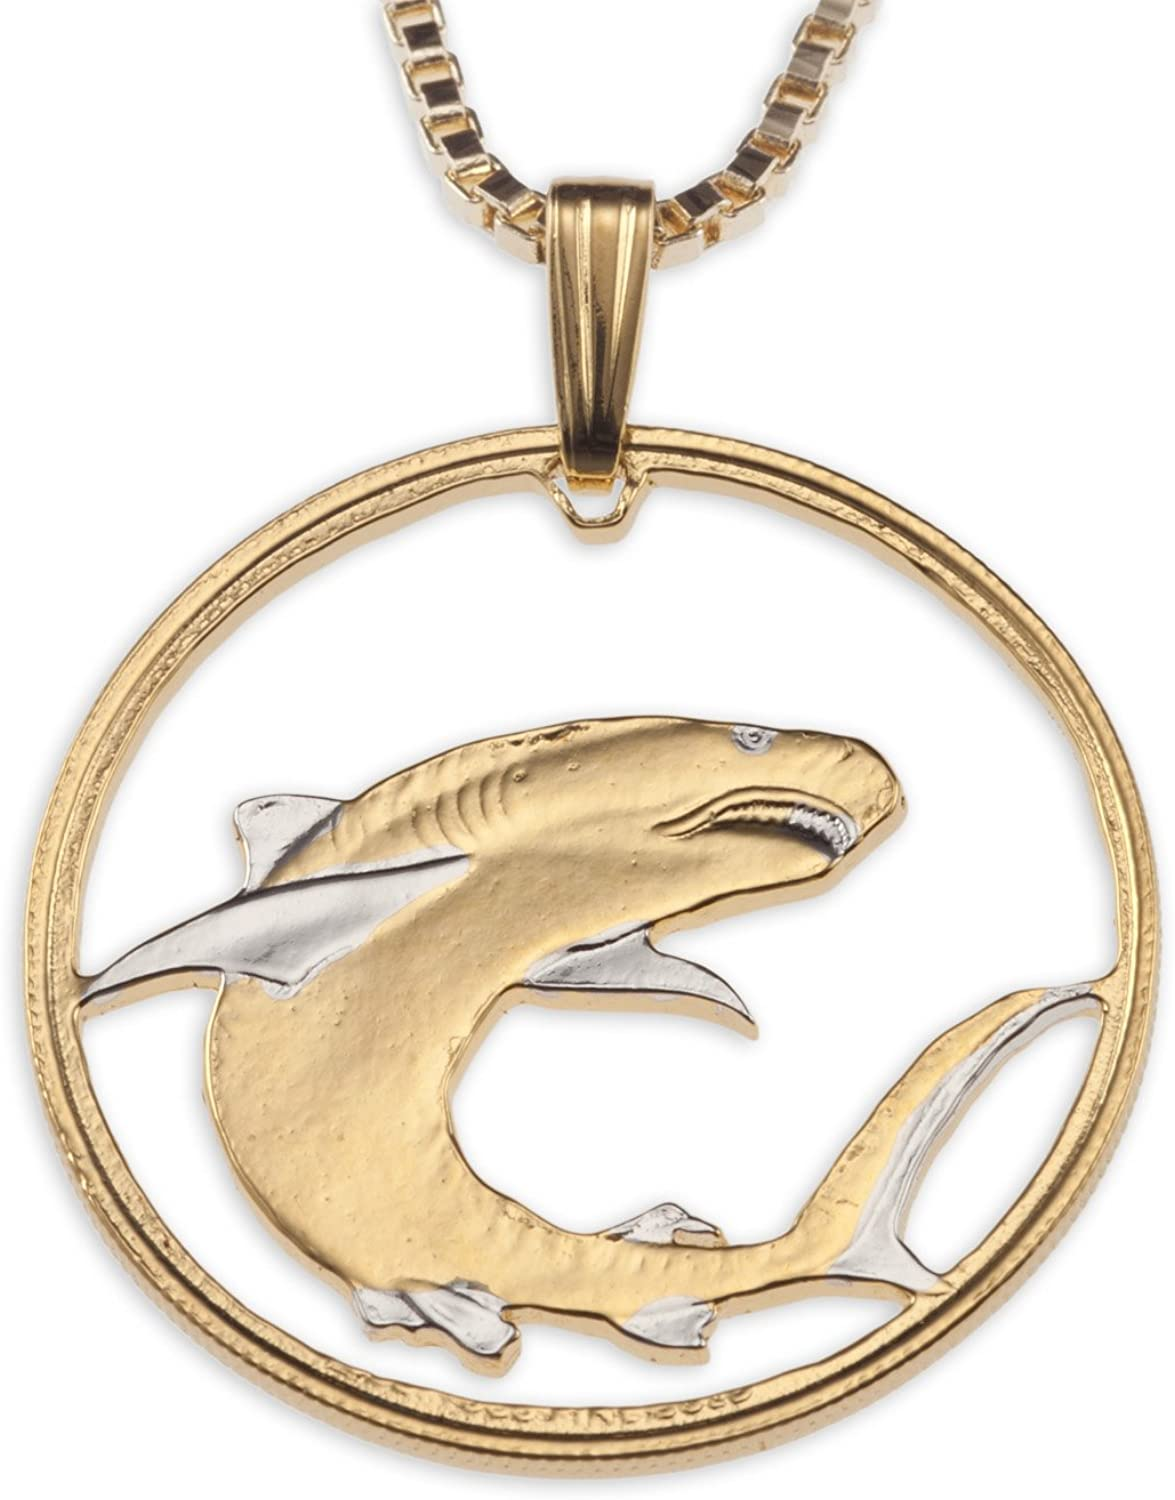 Shark Pendant & Necklace, Hand Pierced Coin from The Soloman Islands